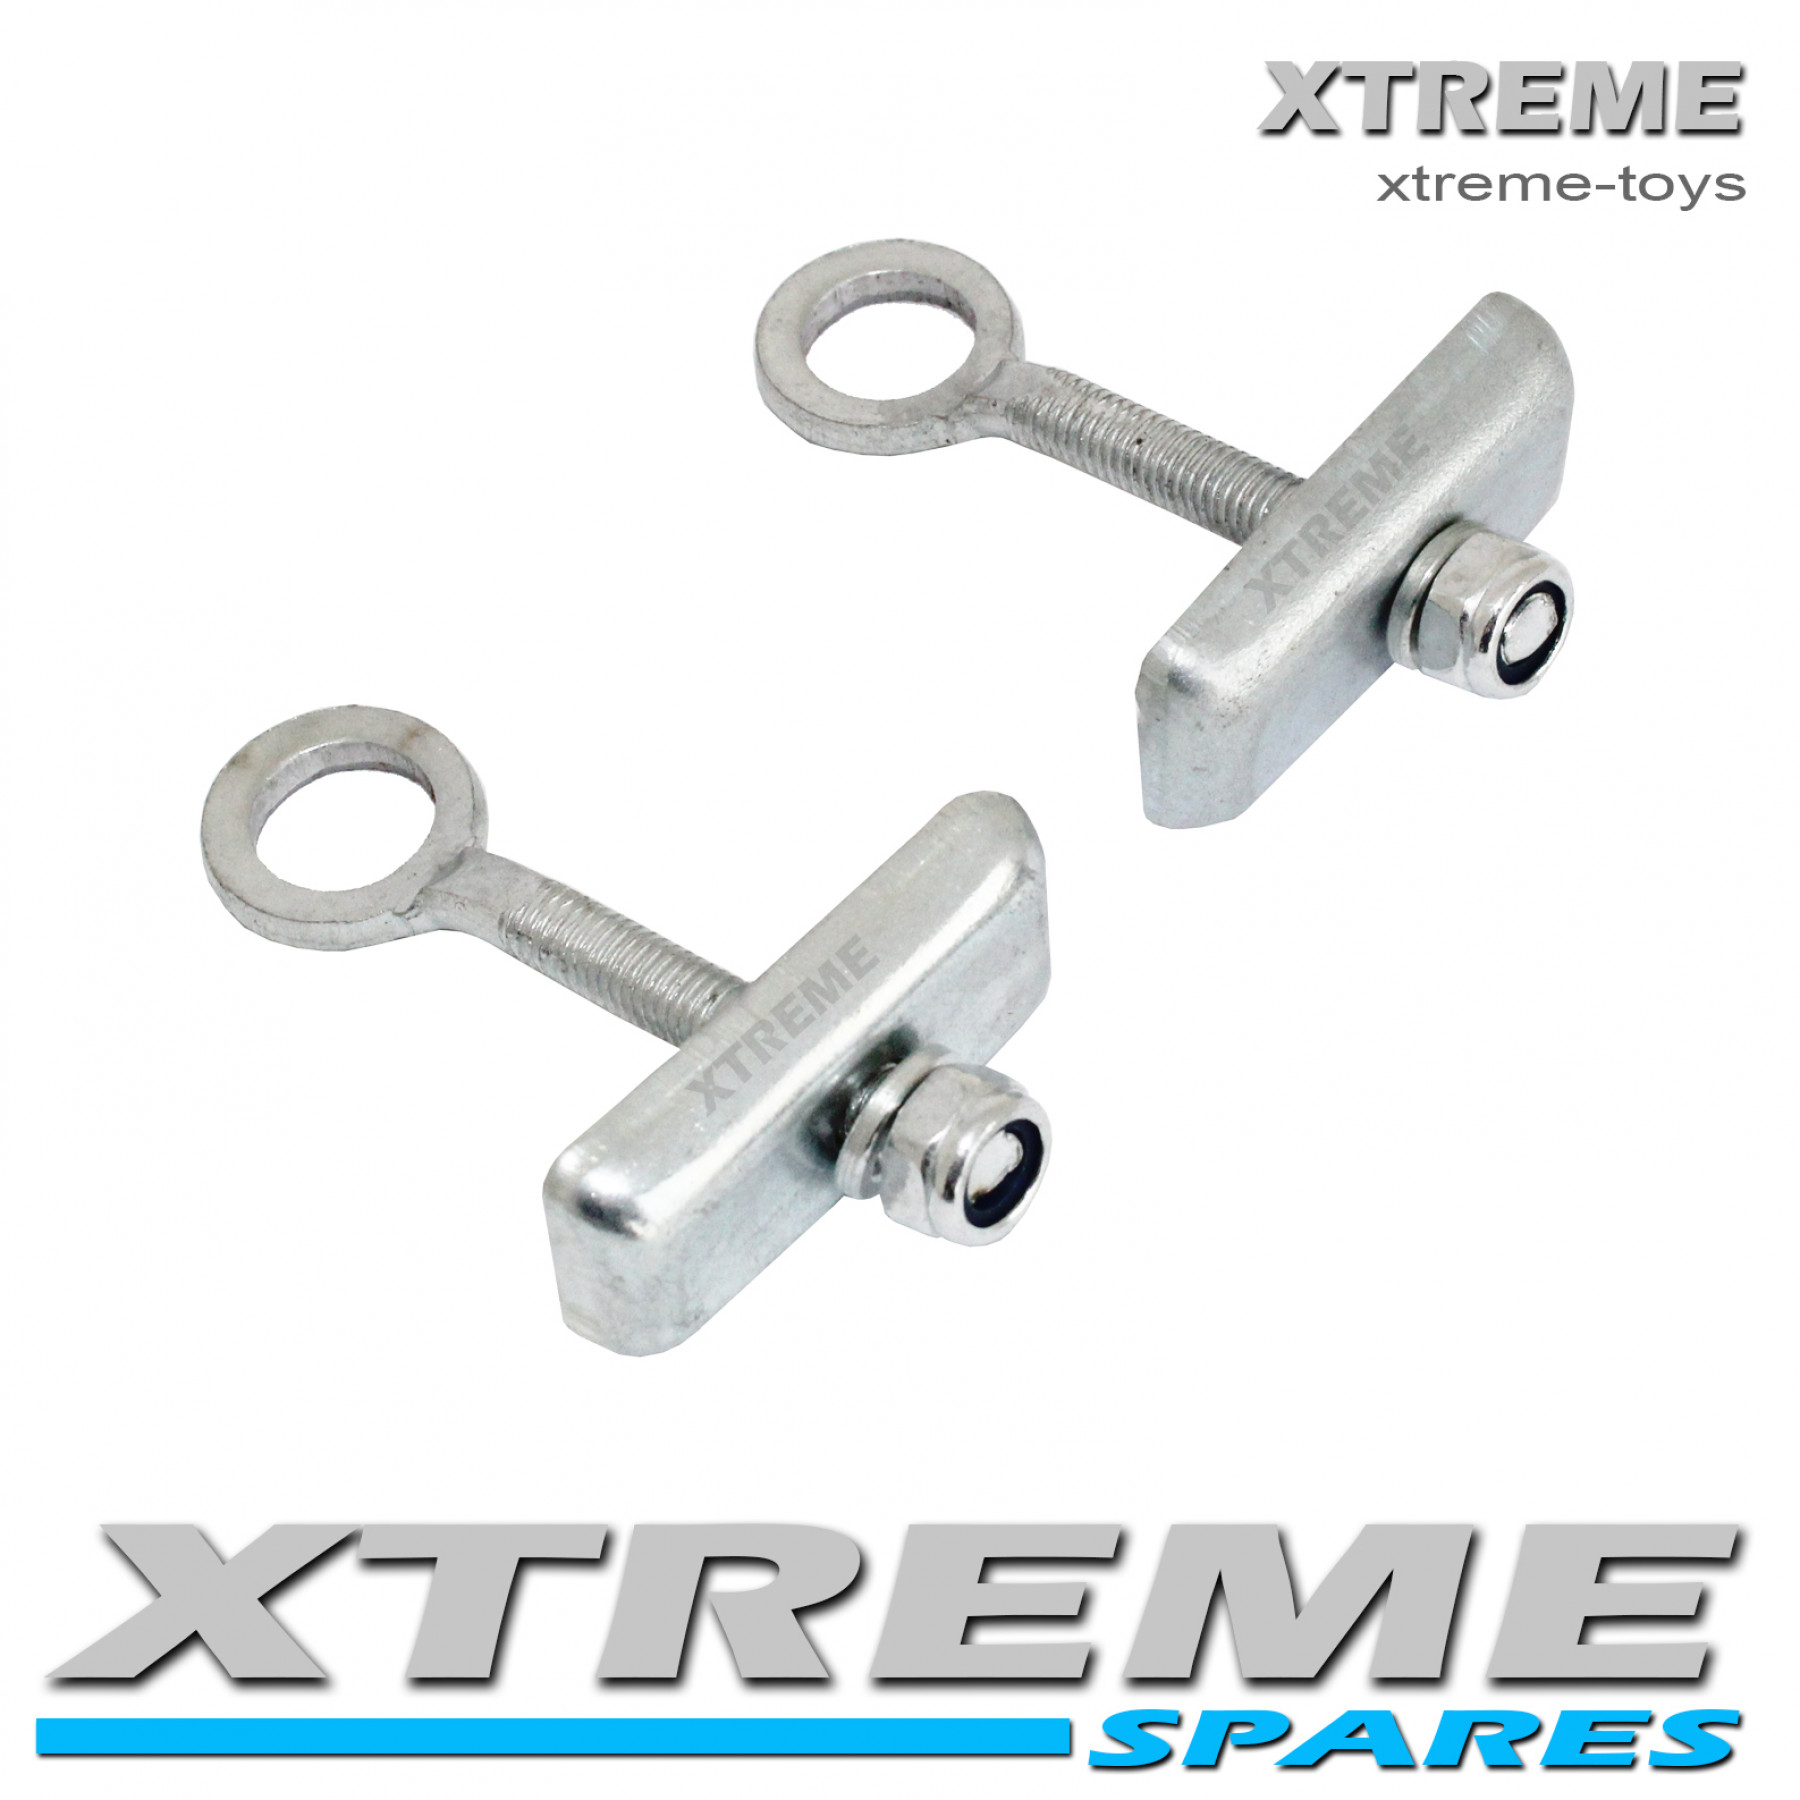 MINI MOTO / DIRT BIKE / QUAD / ATV CHAIN TENSIONERS CRX 49 - 50cc